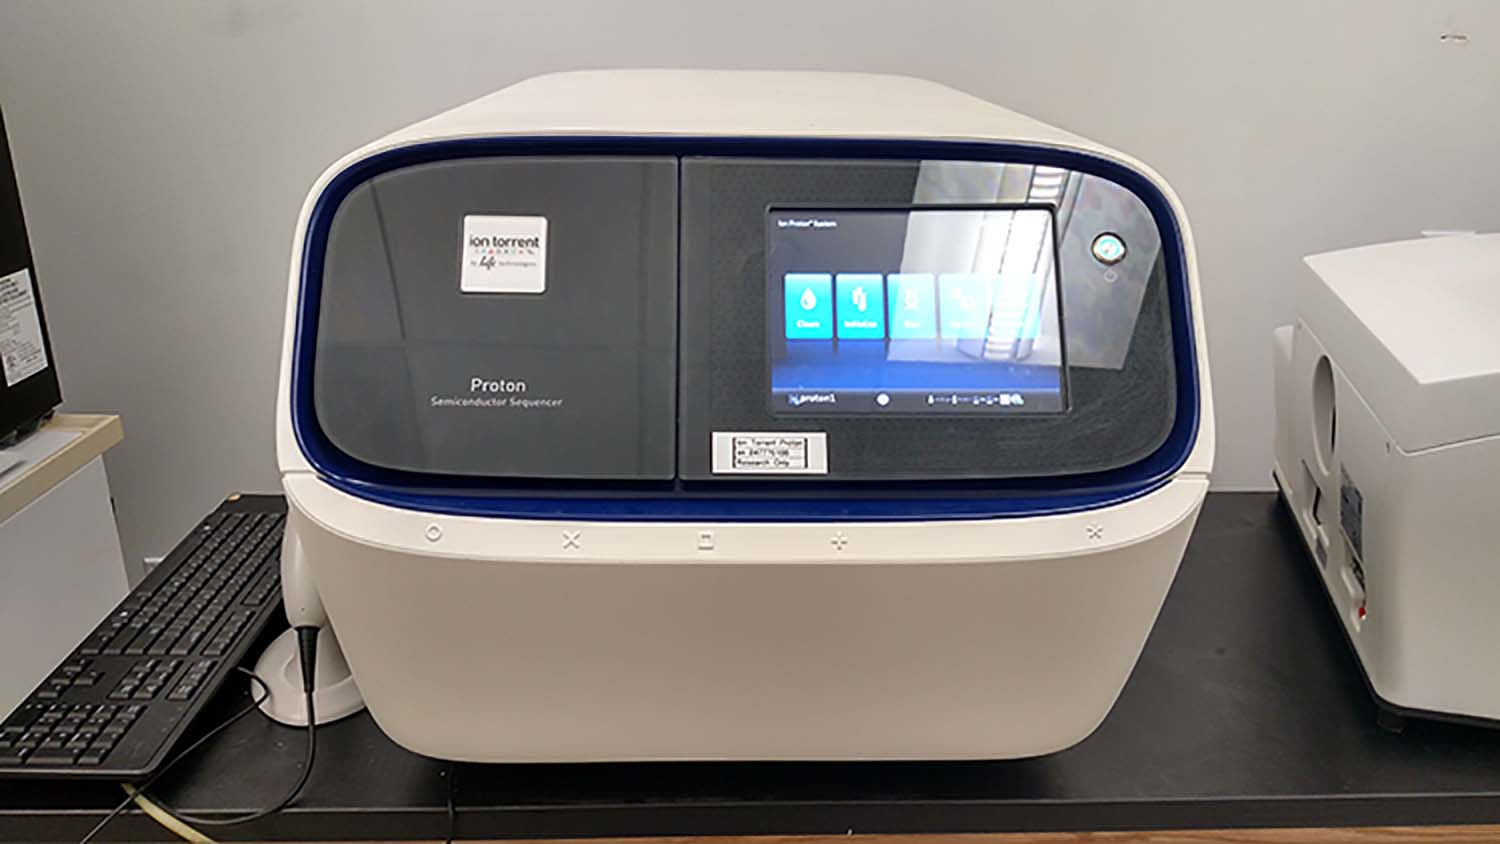 2014 Ion Torrent Proton - from working CLIA laboratory